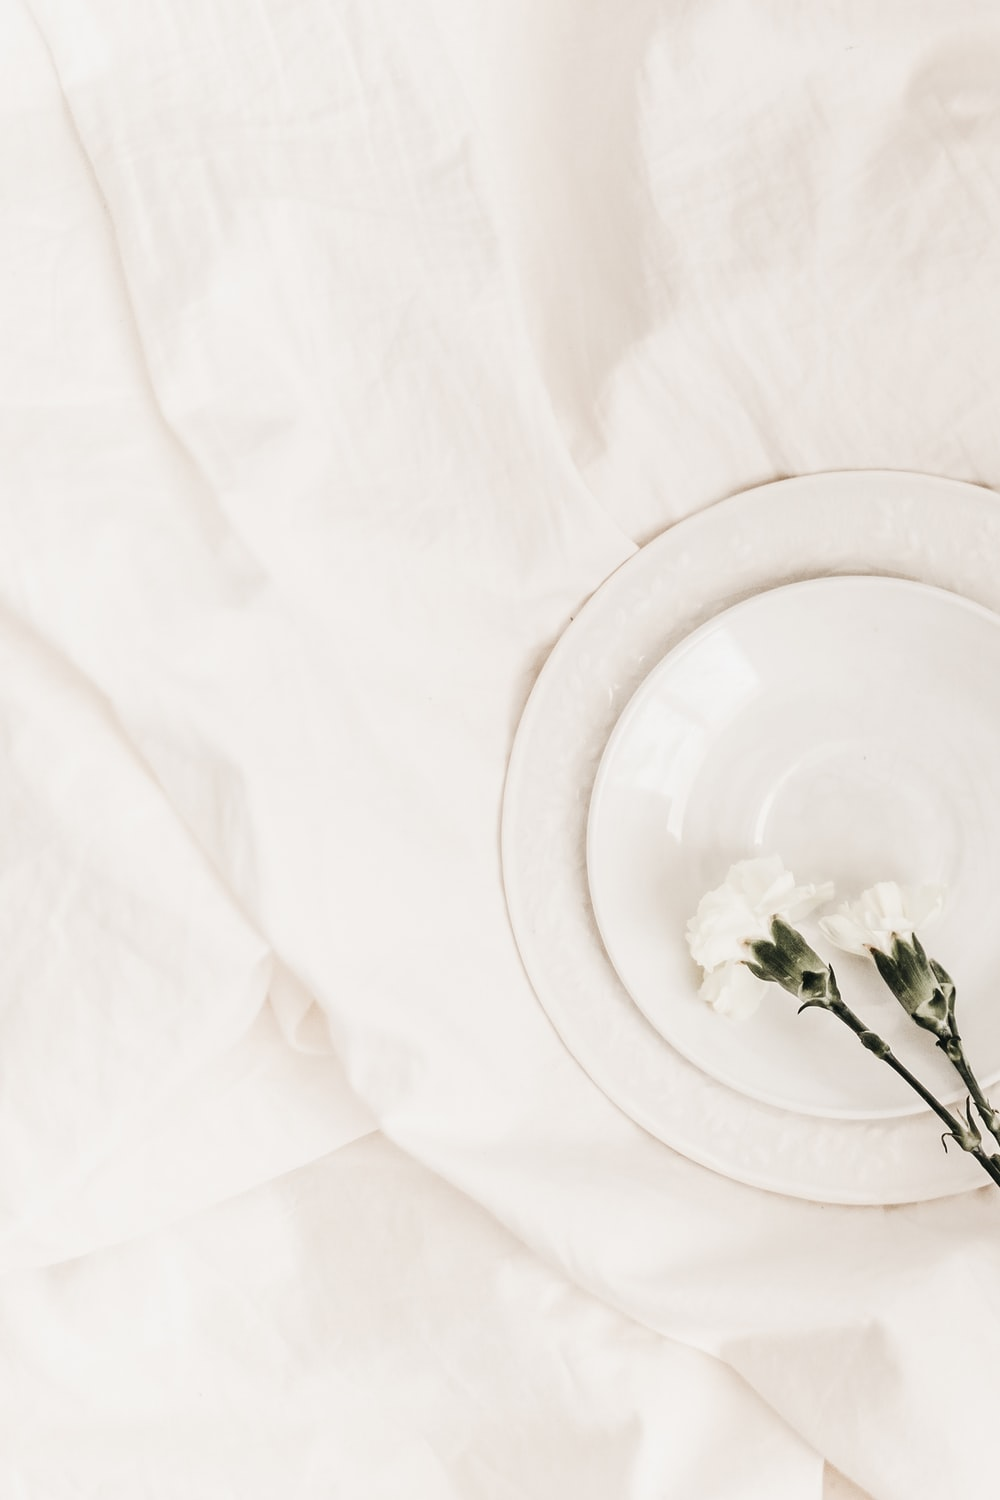 flat lay photography of two white flowers on top of white plate